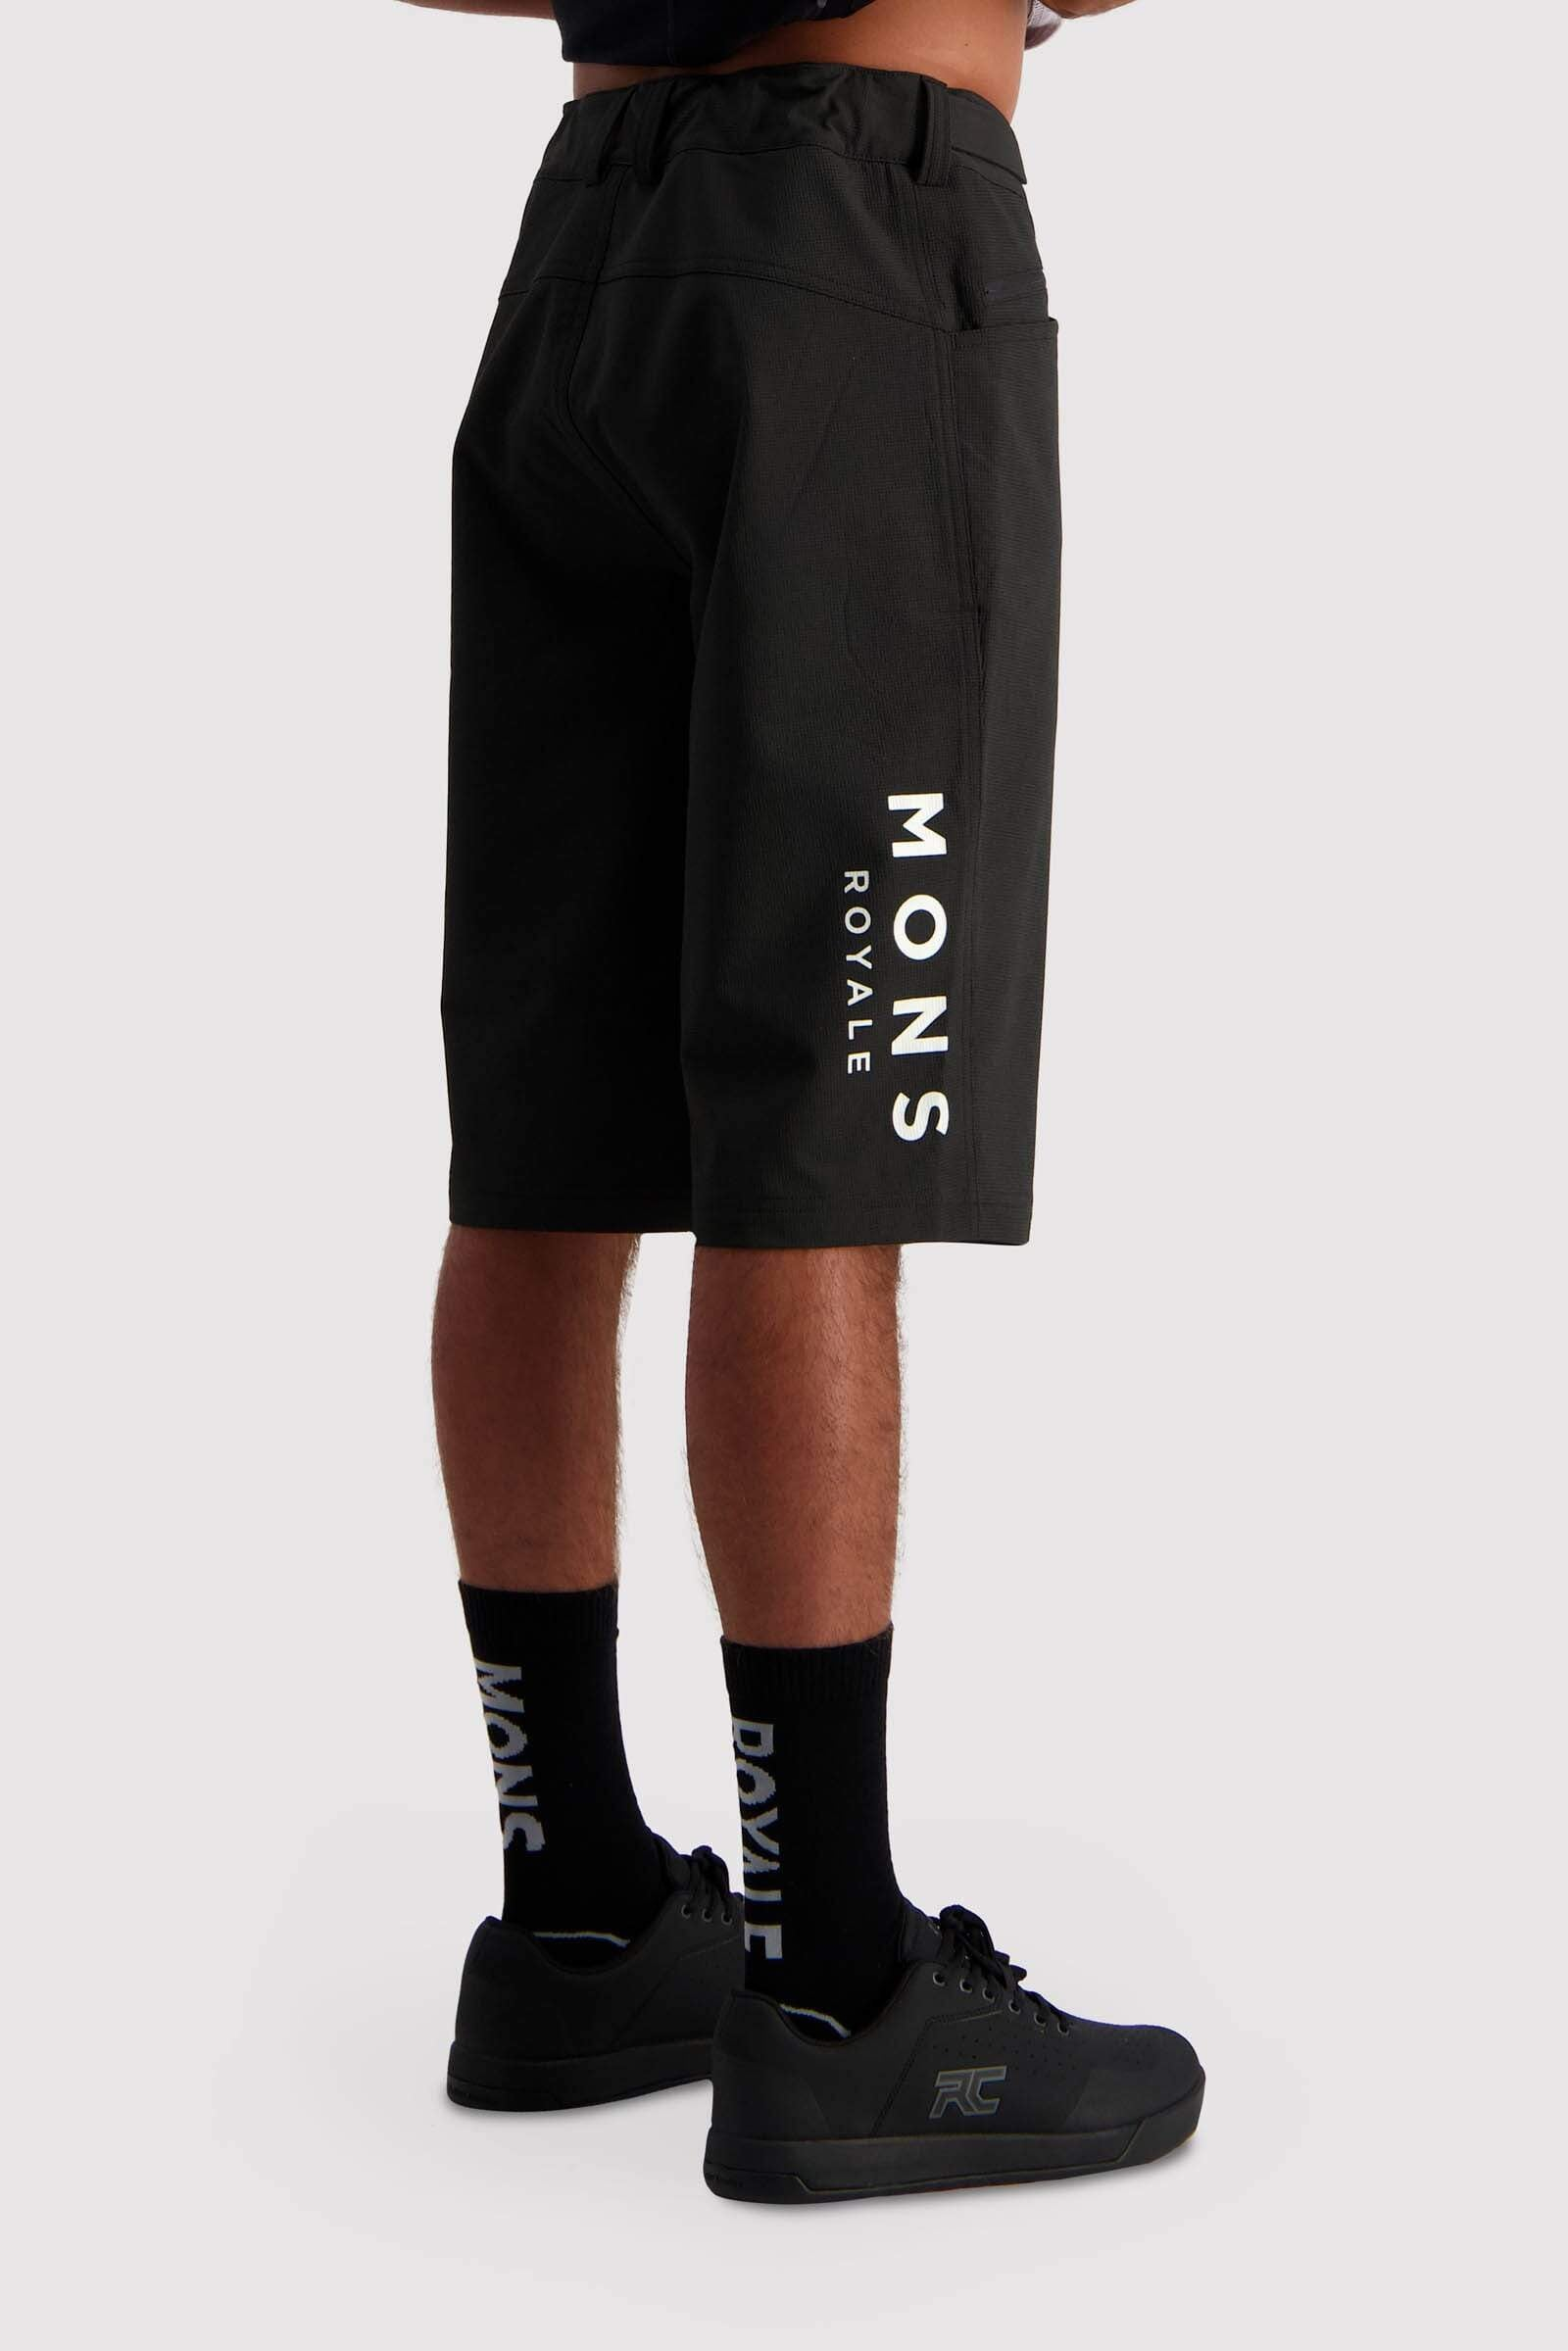 Momentum 2.0 Bike Shorts - Black